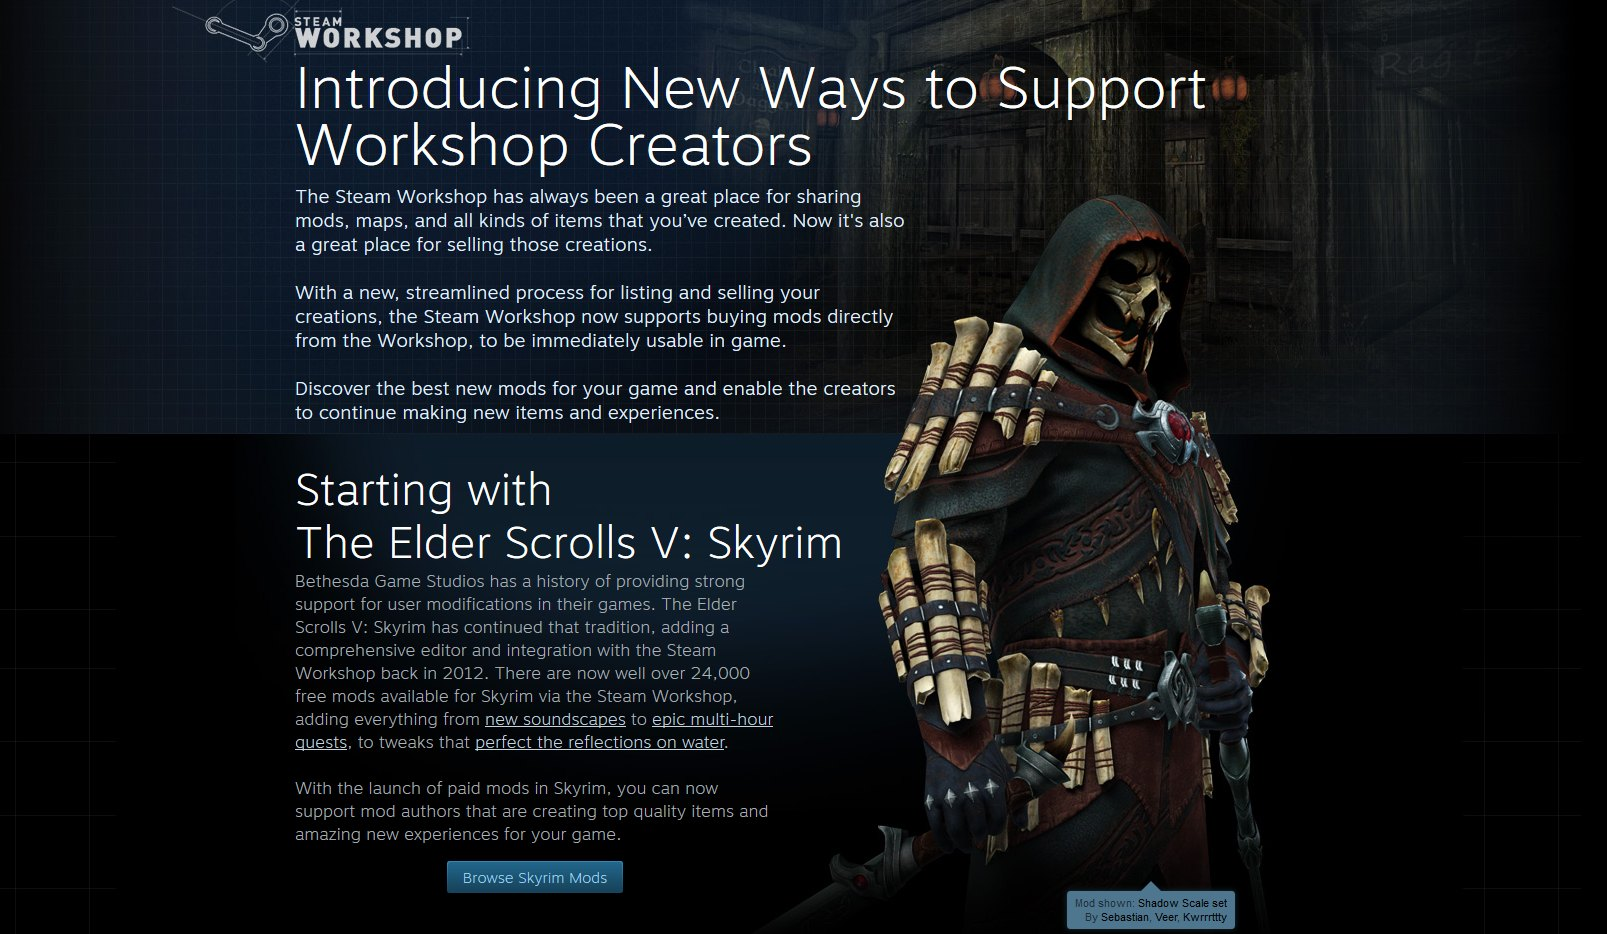 Valve Introduces Paid Mod Support, Rustles Jimmies